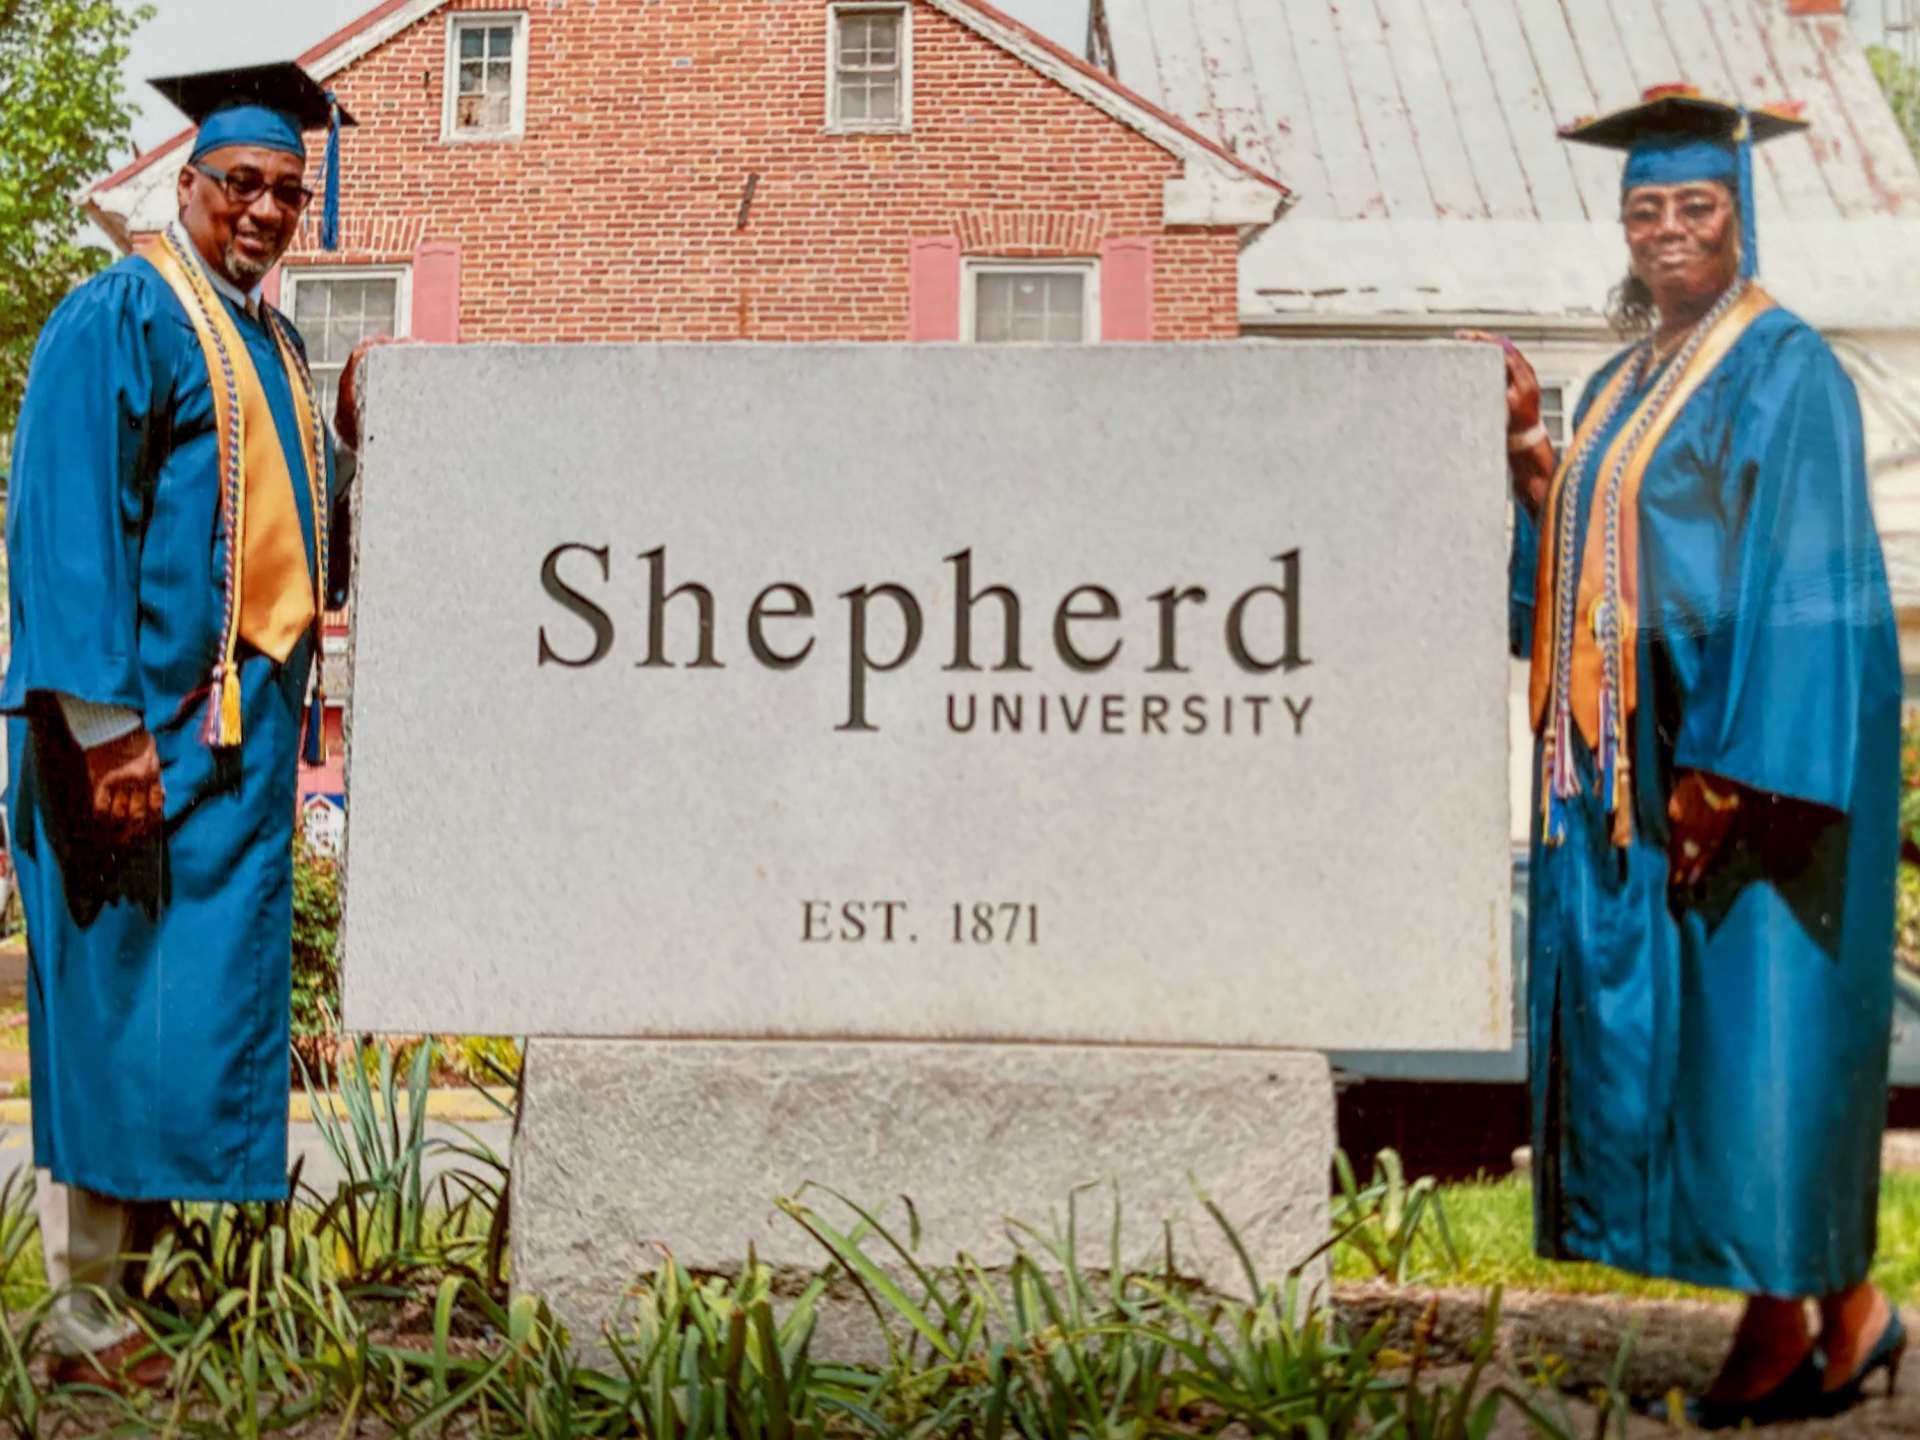 Osmund Anderson and Debra Saunders pose in their caps and gowns next to Shepherd's sign.